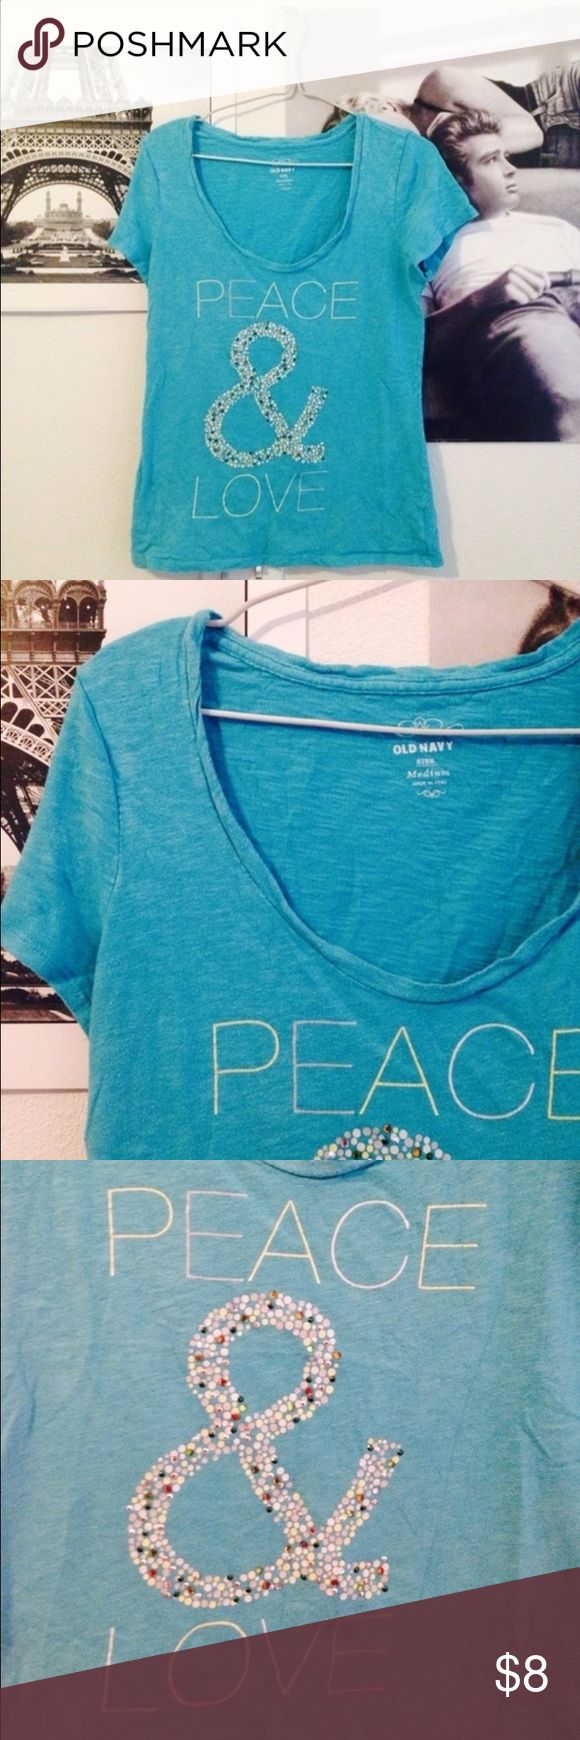 Peace and Love Tee Shirt Super cute piece! Bright turquoise color. Stretchy material. Embellished & sign on the front. Old Navy Tops Tees - Short Sleeve